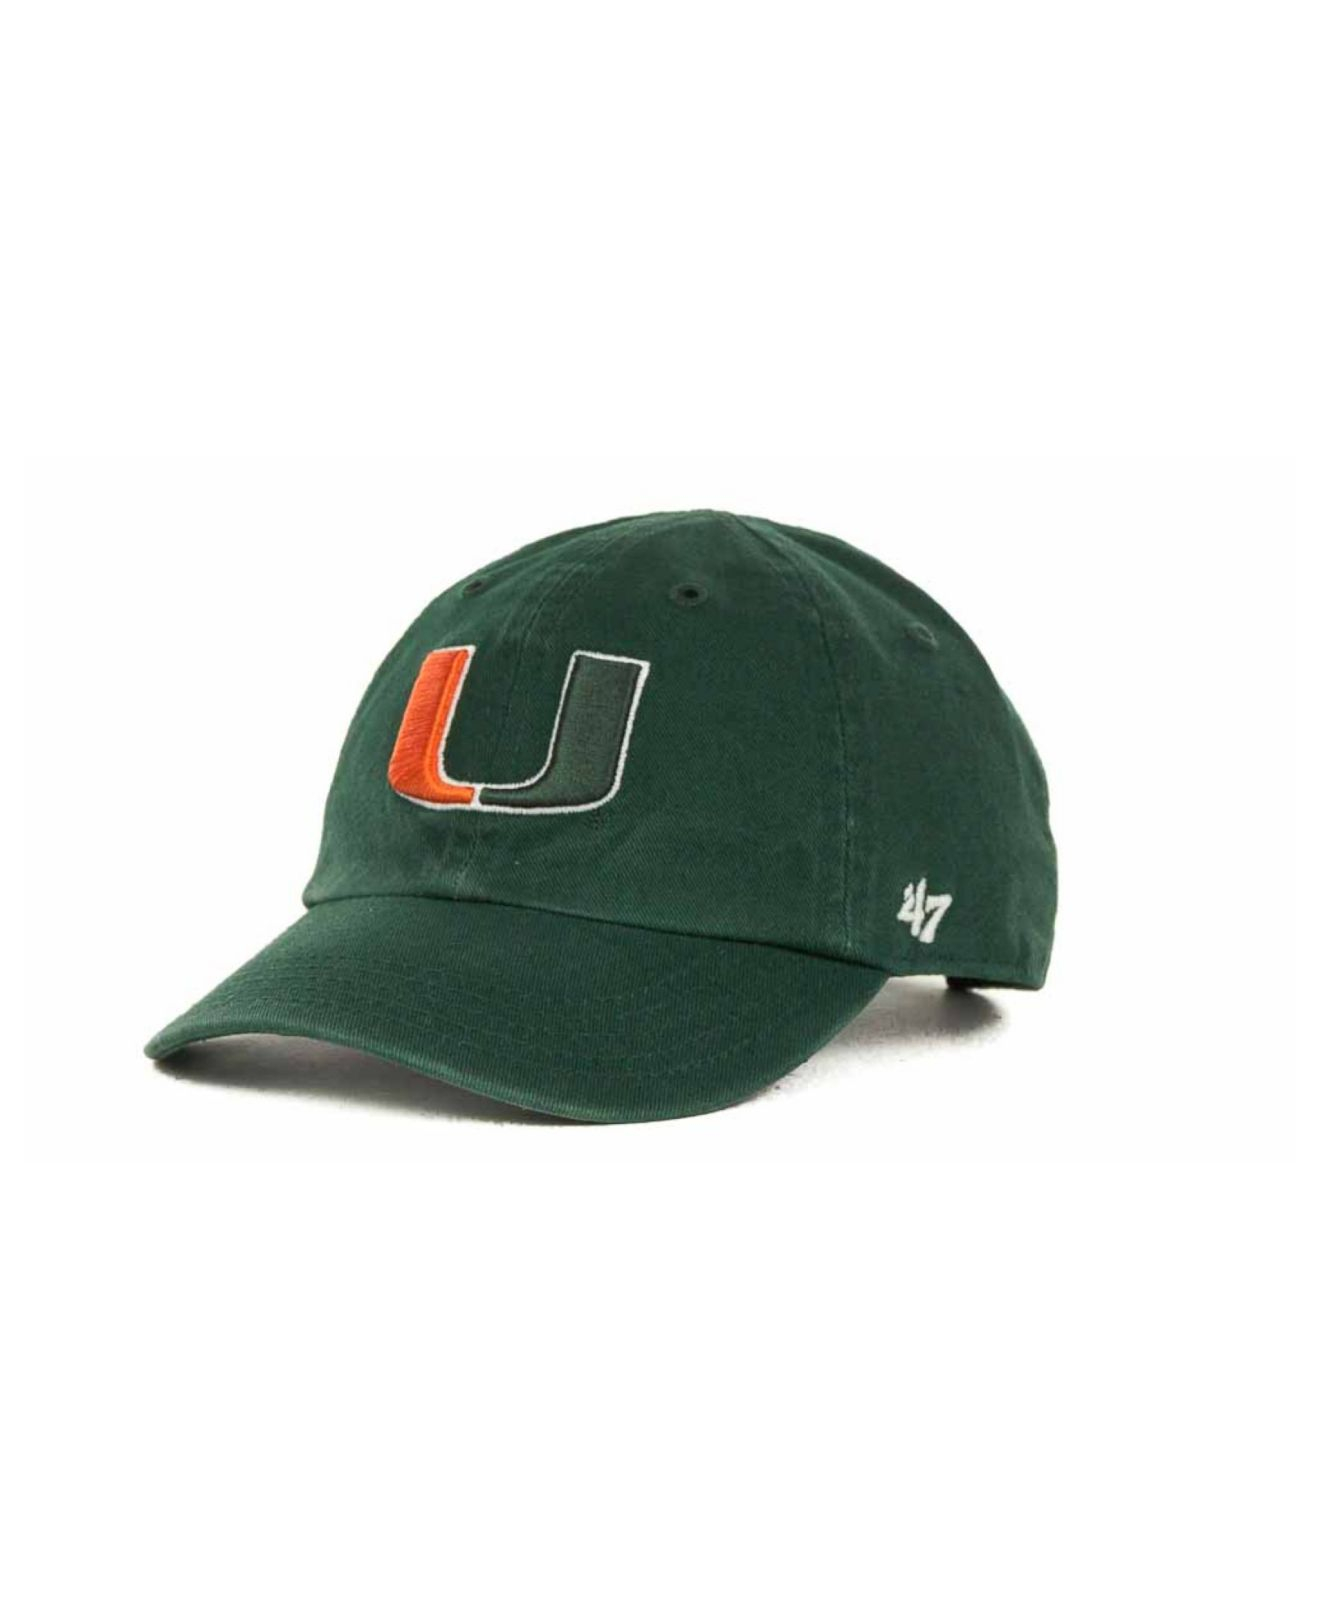 5bd8464ad8d85 ... discount lyst 47 brand toddlers miami hurricanes clean up cap in green  for men 30f45 e36e2